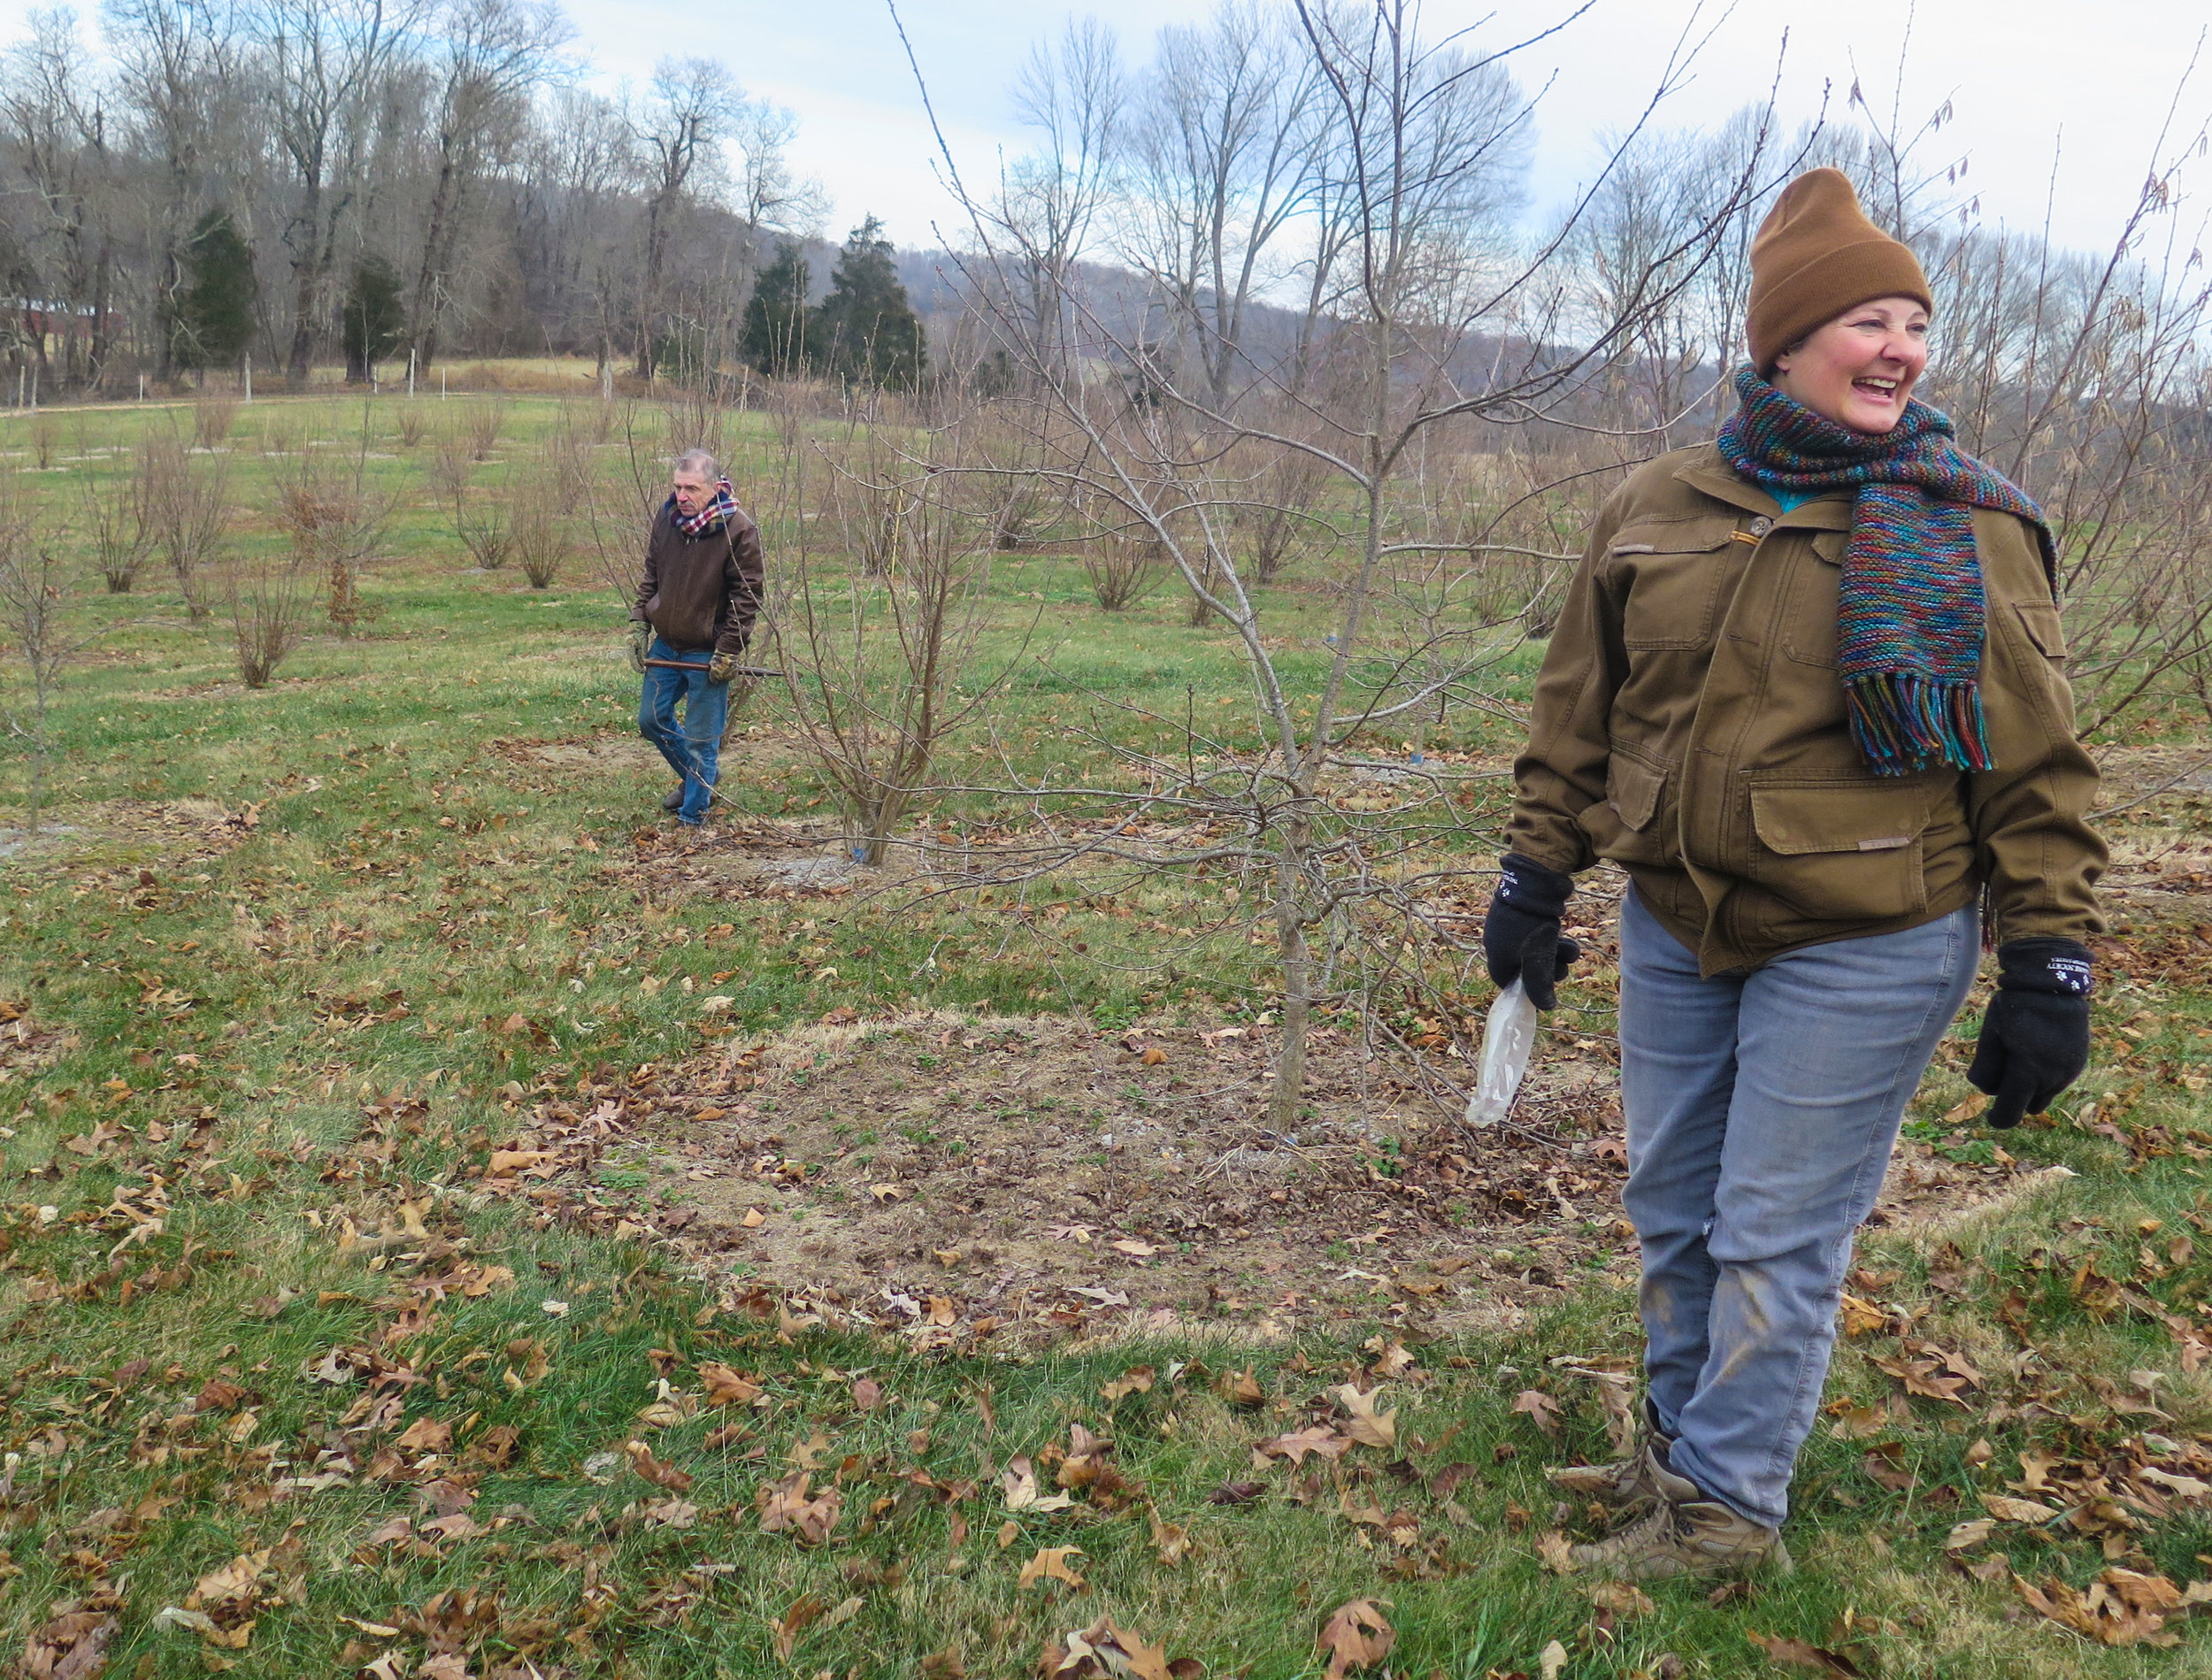 Margaret Townsend and Tom Michaels walked the grounds during the truffle hunt.